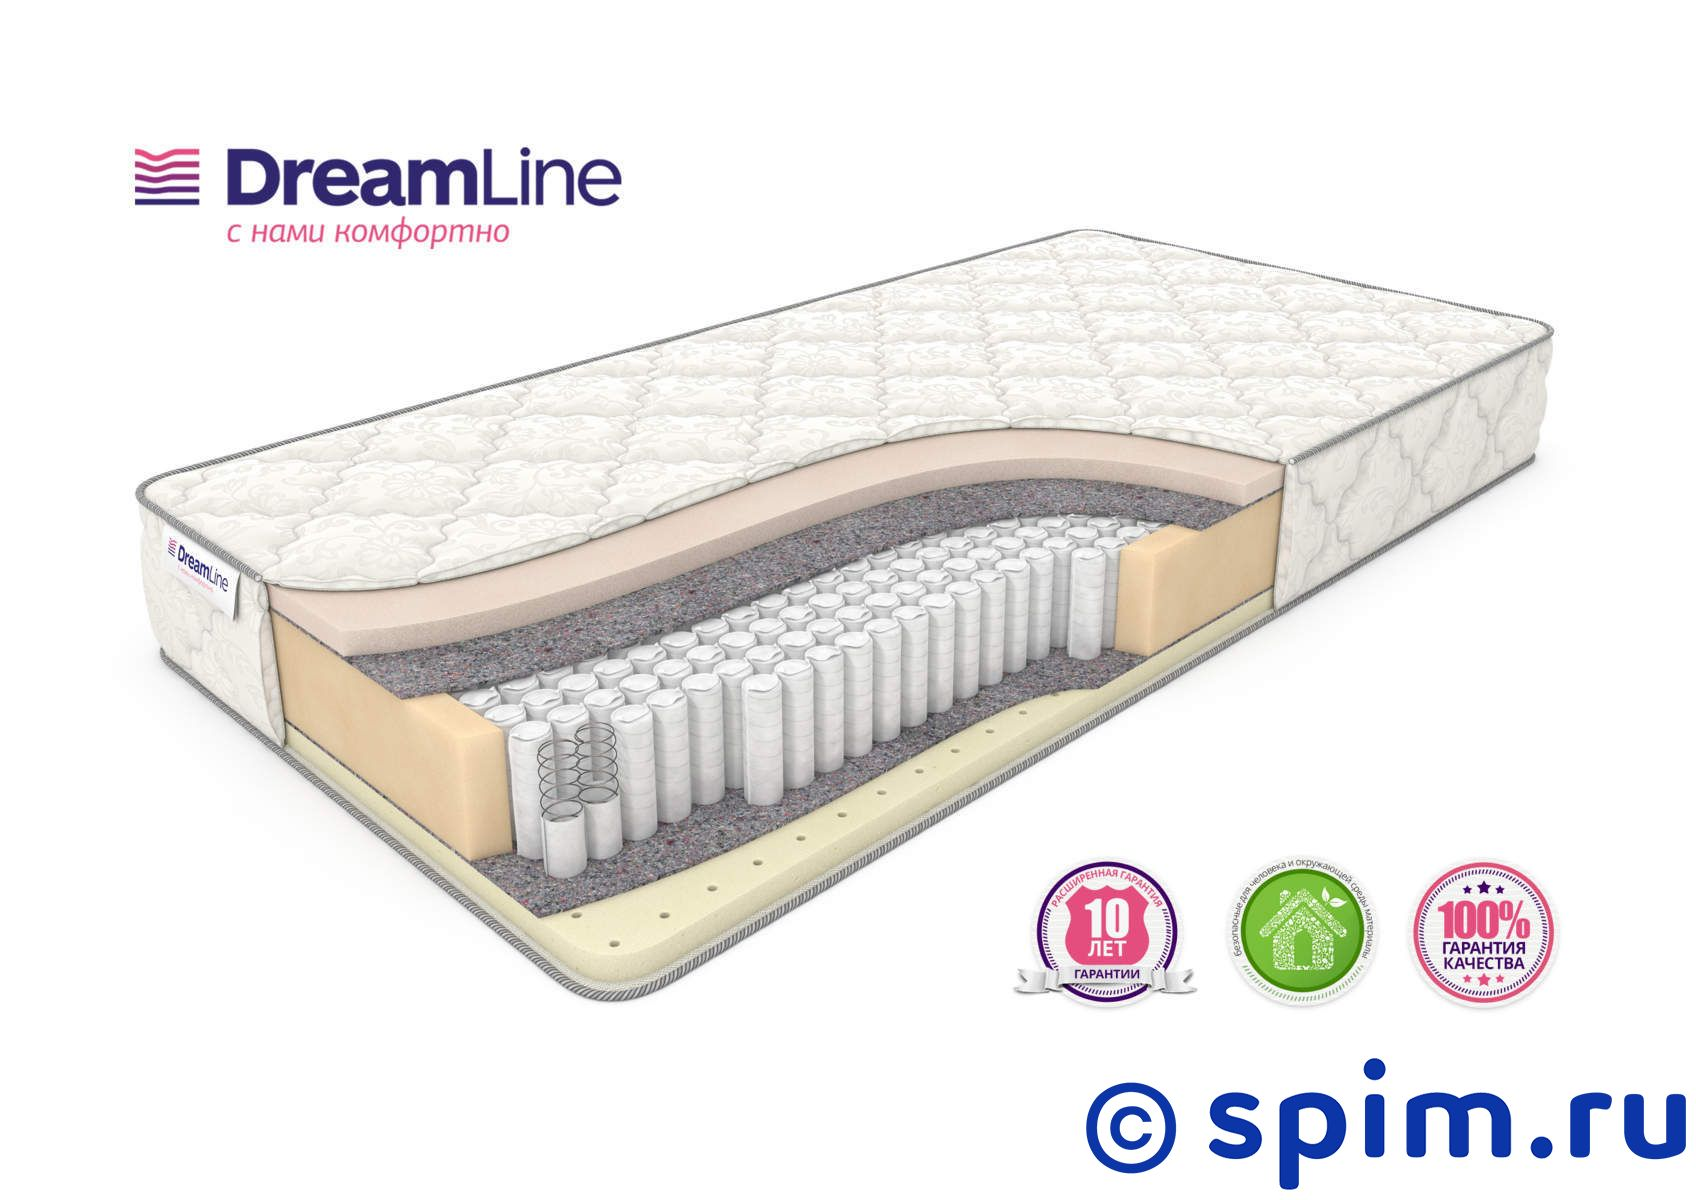 Матрас DreamLine Memory Sleep S1000 120х190 см матрас dreamline memory dream s 1000 90x195